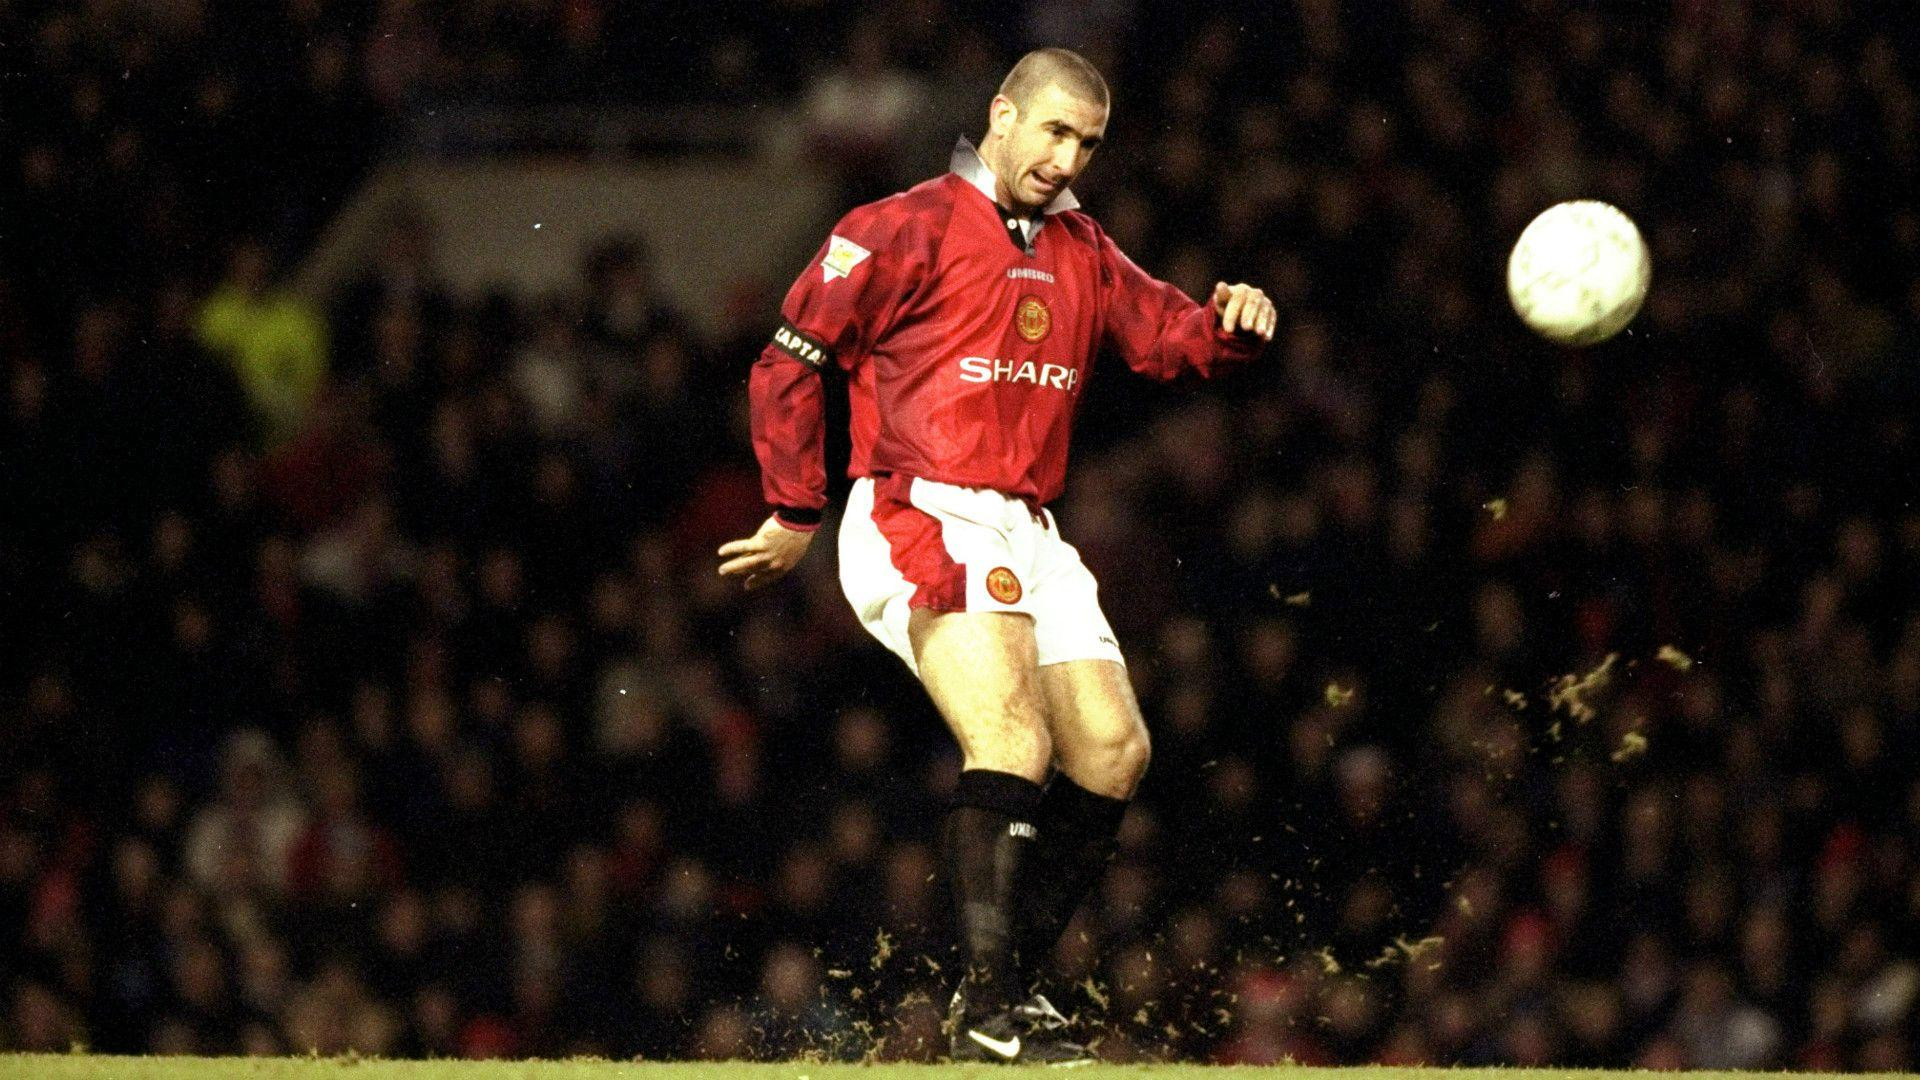 Taken on july 29, 2008. Eric Cantona Wallpapers - Wallpaper Cave